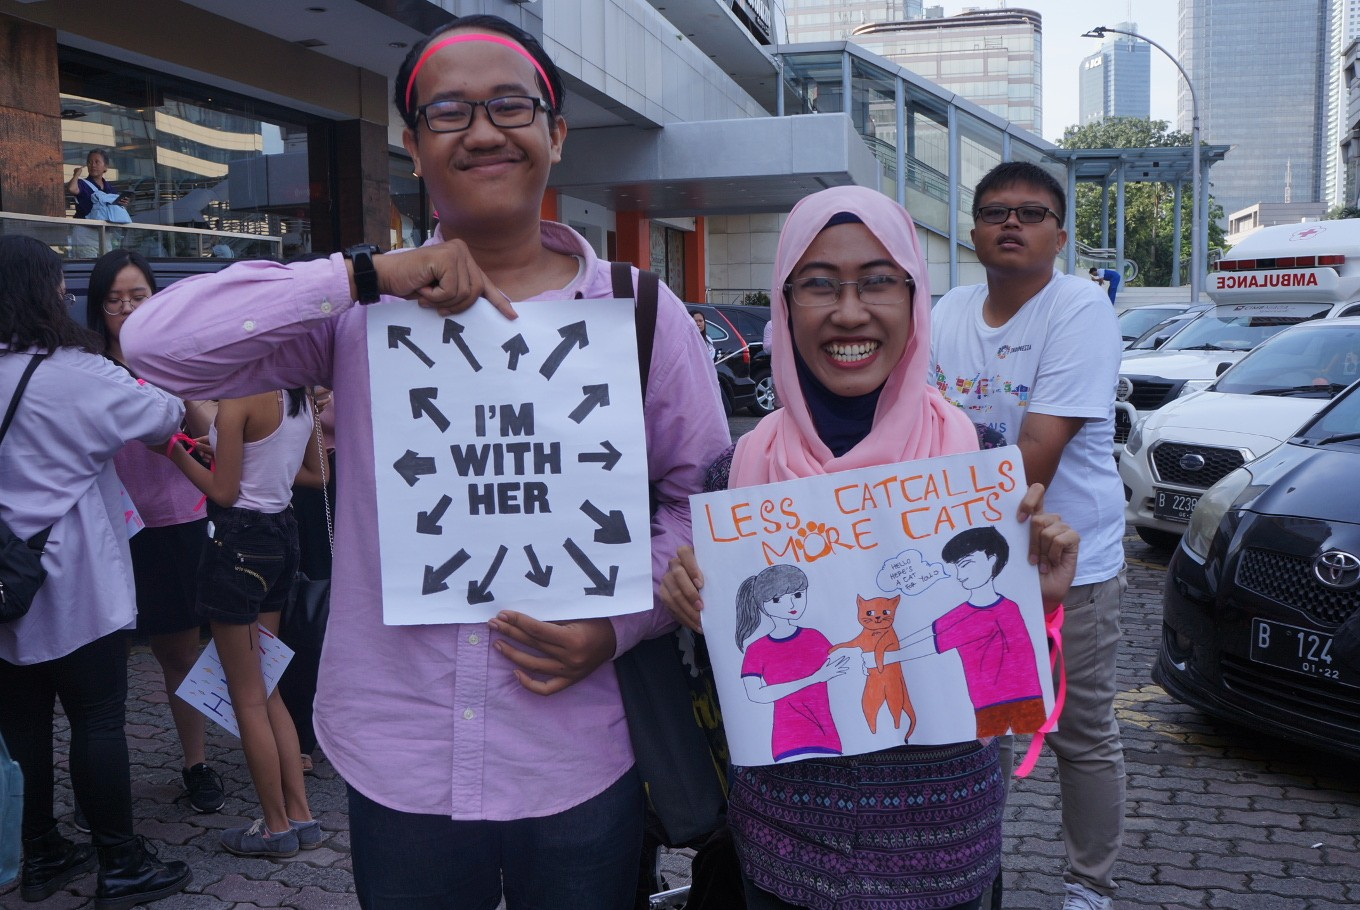 Two participants show their support for women's rights and against catcalling during the march.